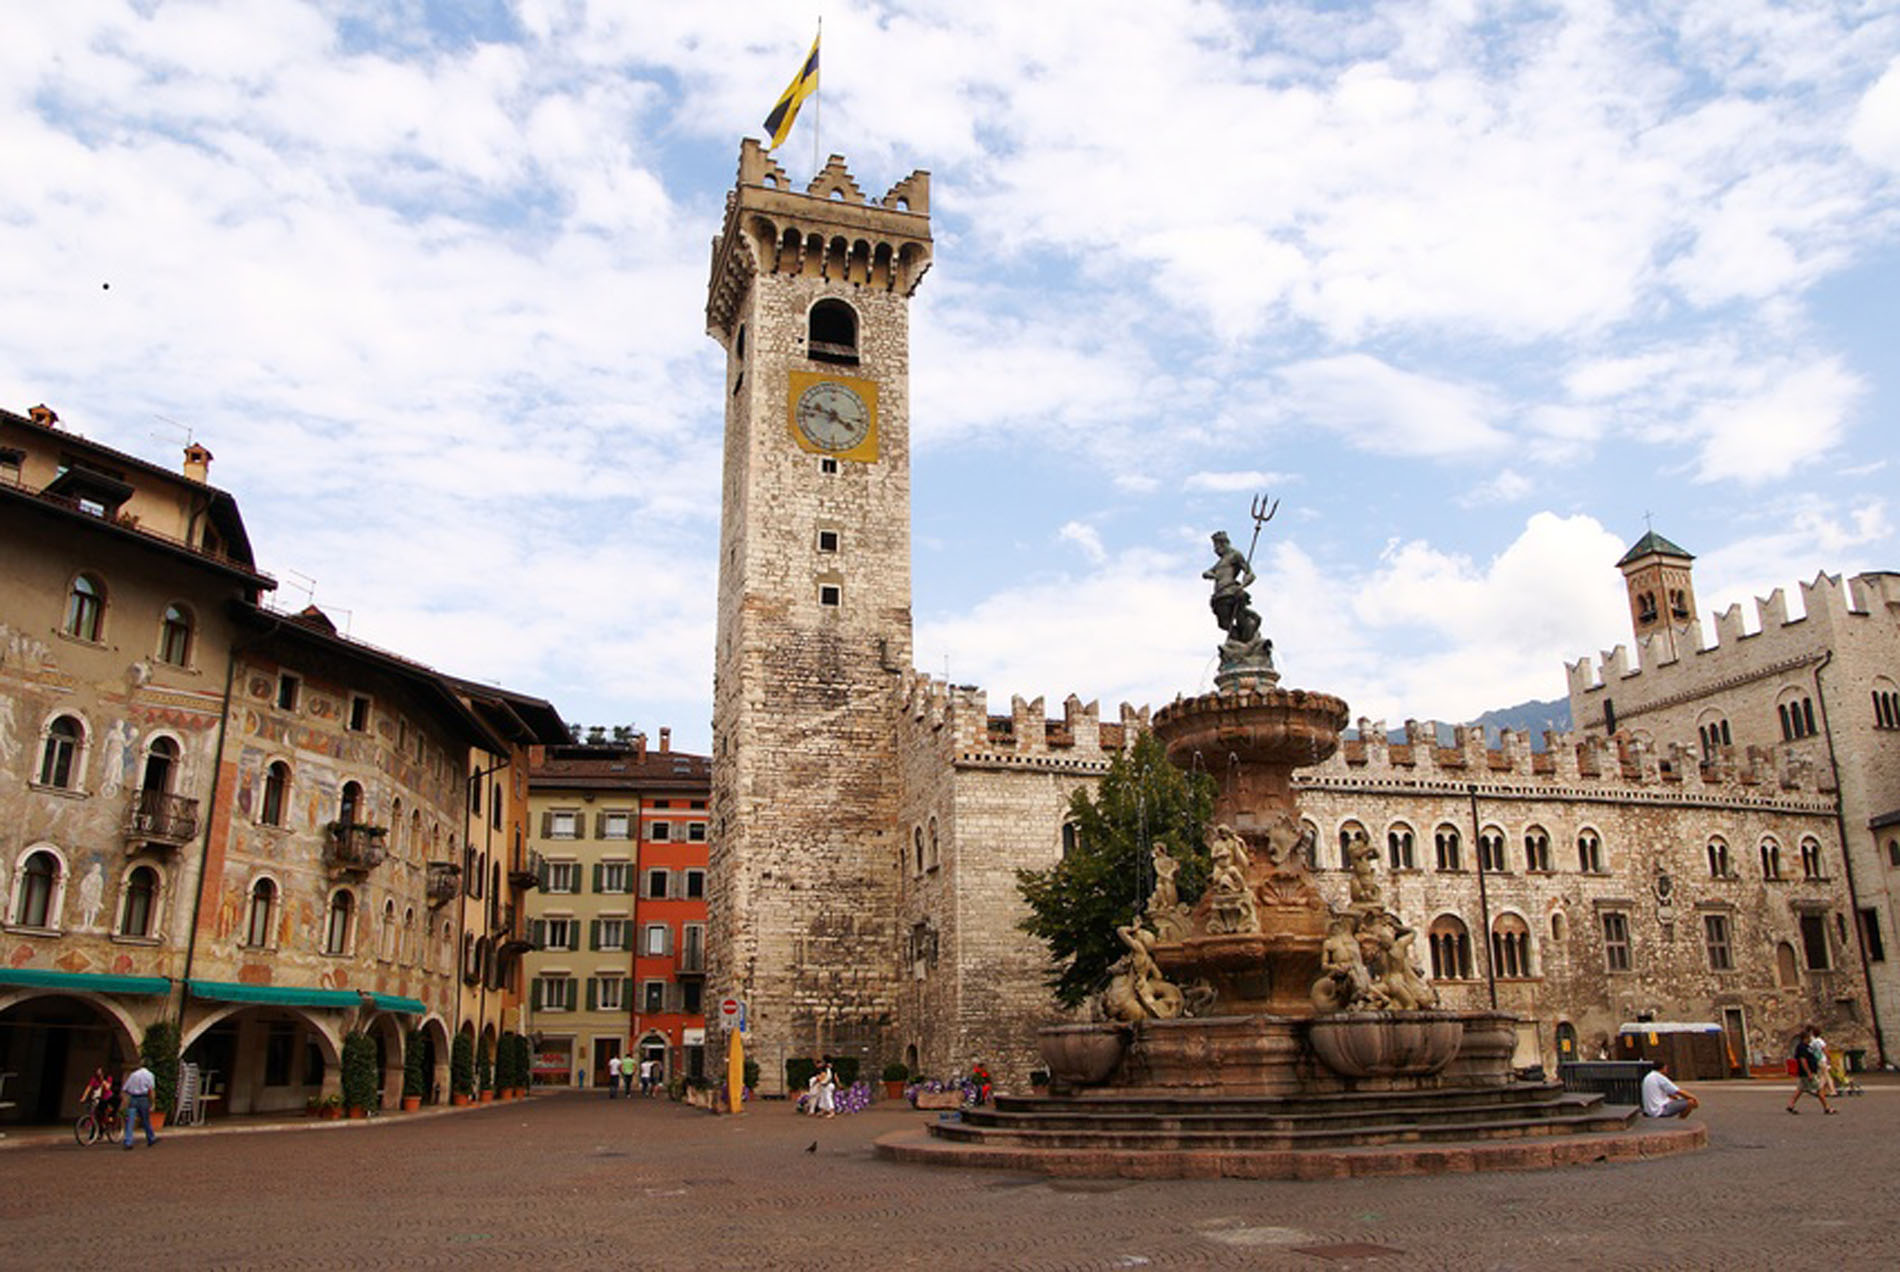 City of Trento in the Trentino Region